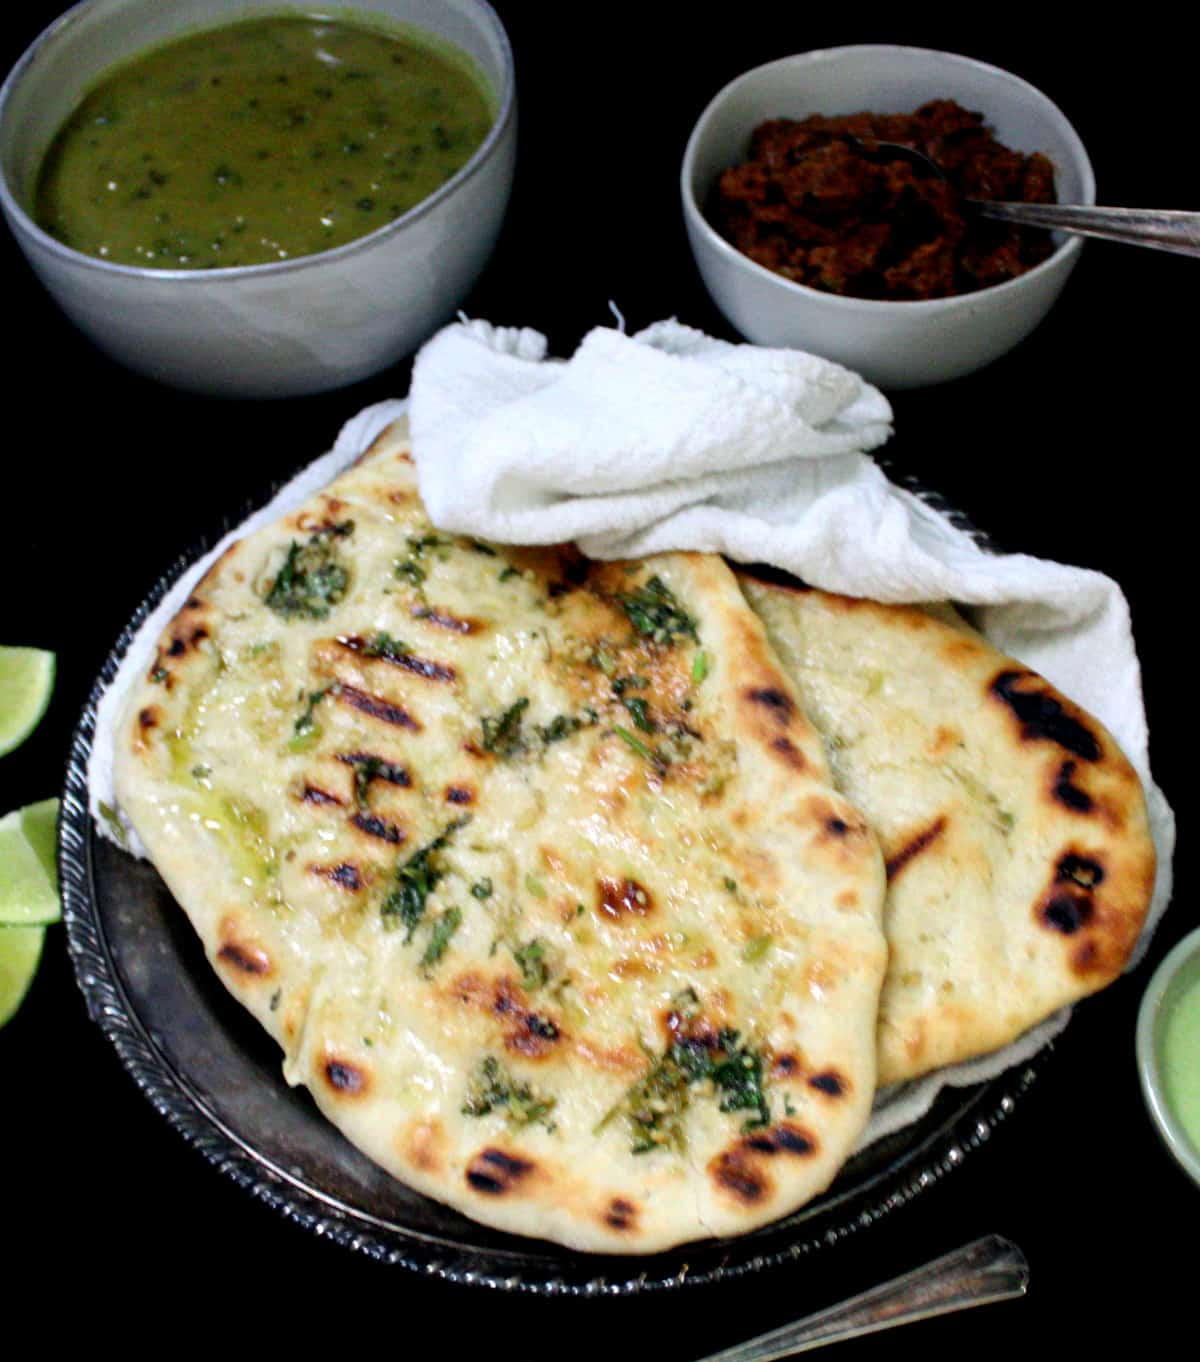 Overhead shot of a few grilled vegan naan breads in a silver plate with a white napkin and a dal and vegan keema masala on the side with chutney and lemons.